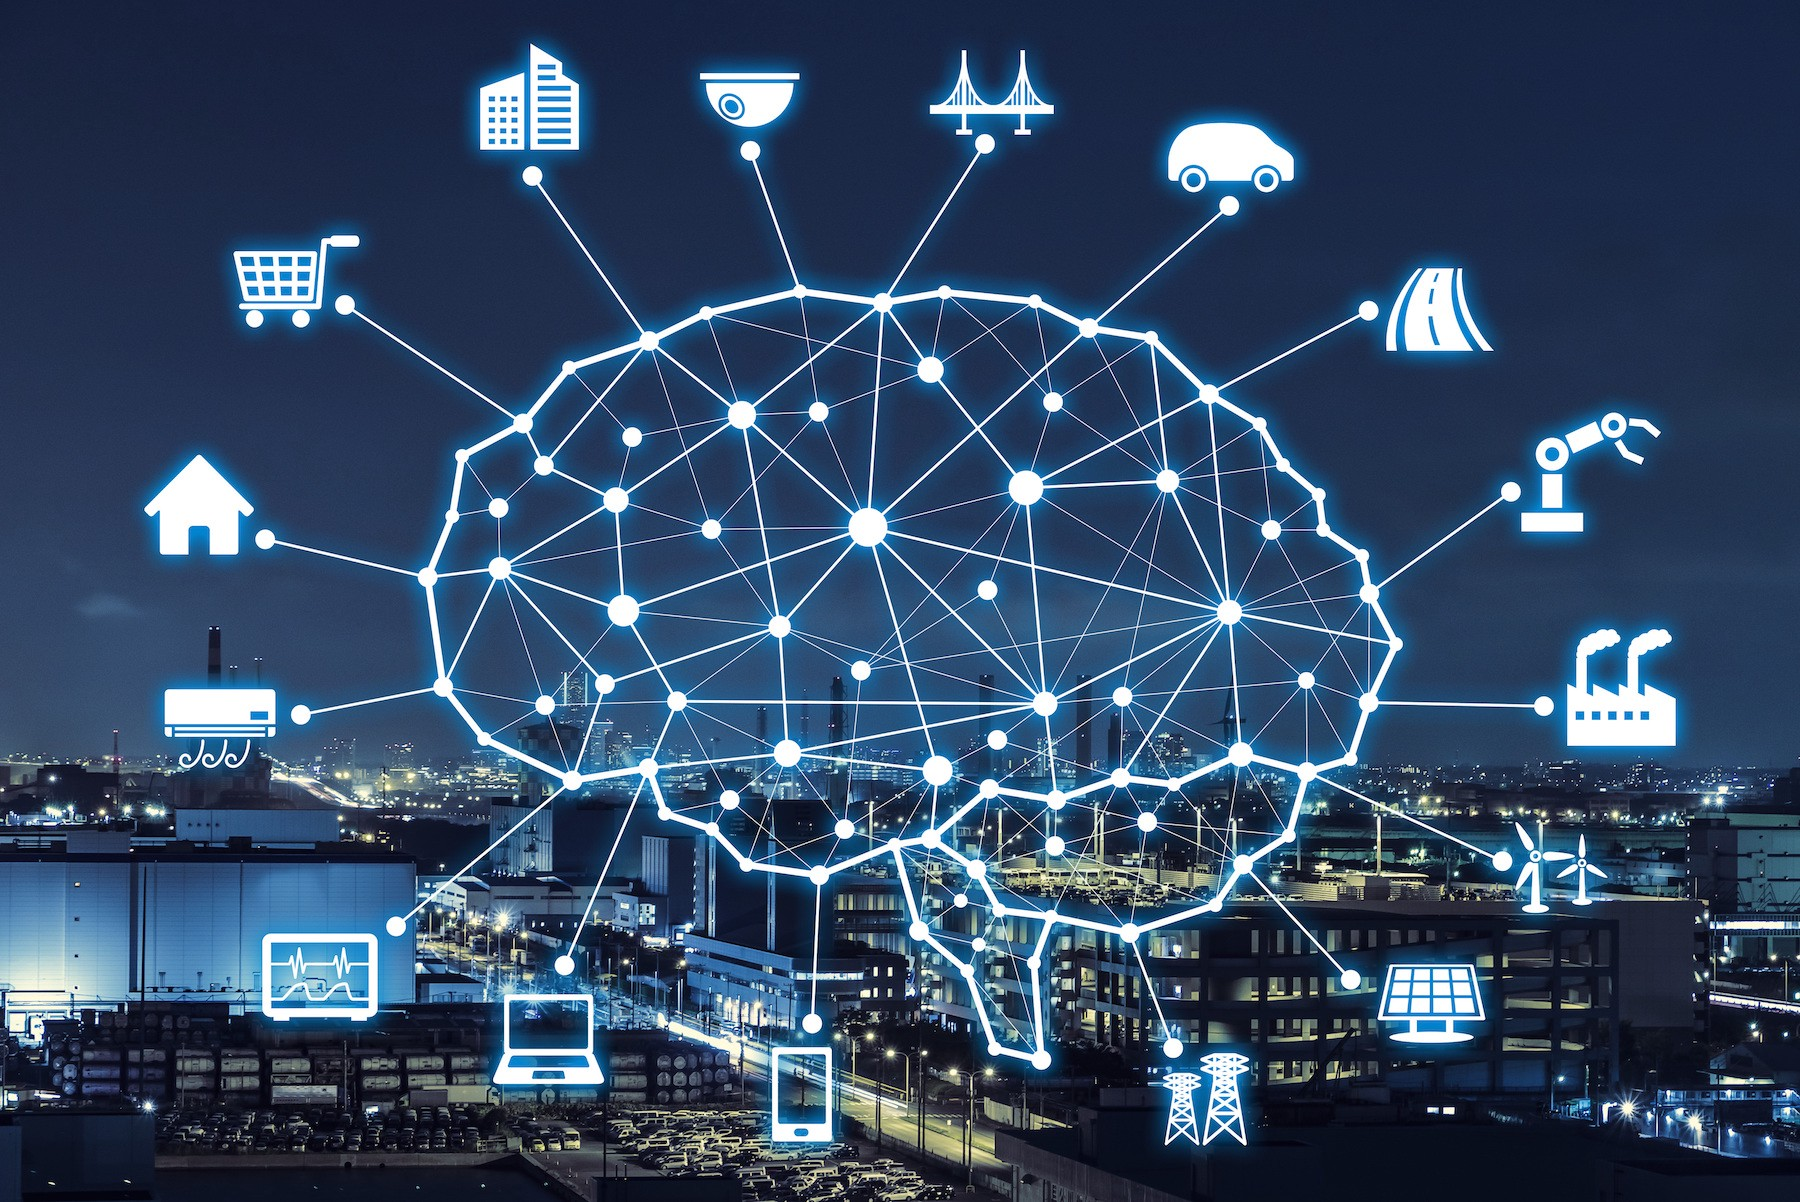 United States Artificial Intelligence Market Report 2021, Share, Size, Industry Trends and Forecast by 2026